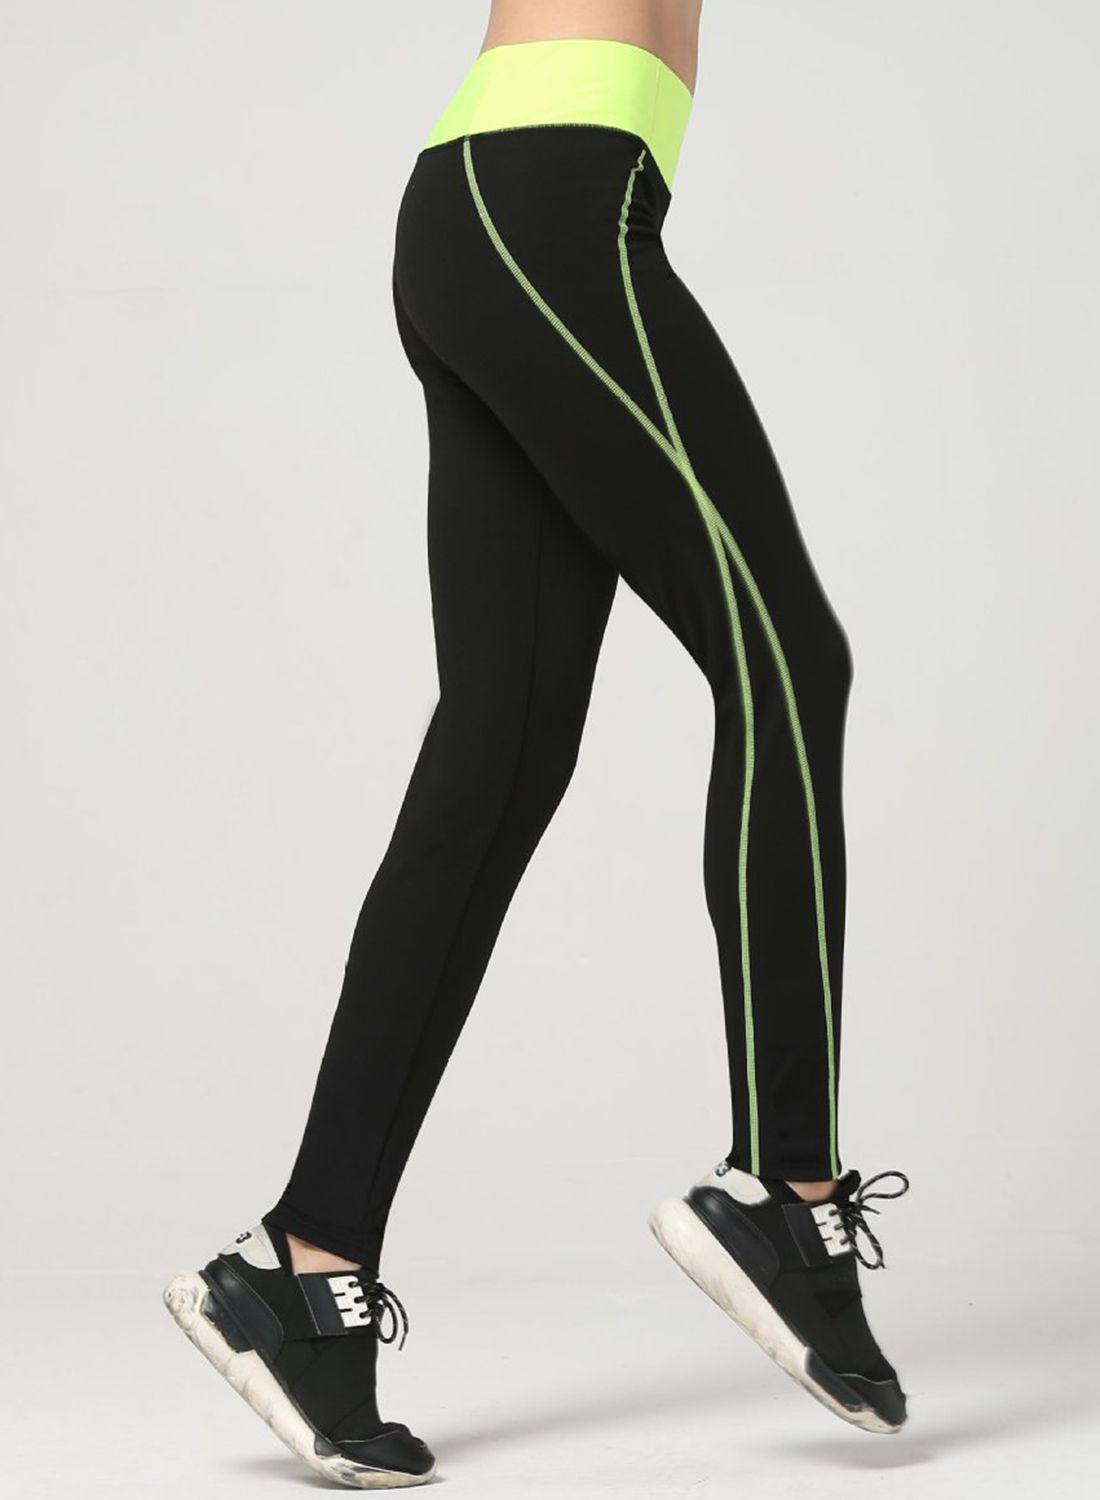 fc5c28f167d49 Wear it to fit! The leggings are made from 90% polyester and 10% spandex  with wide waistband